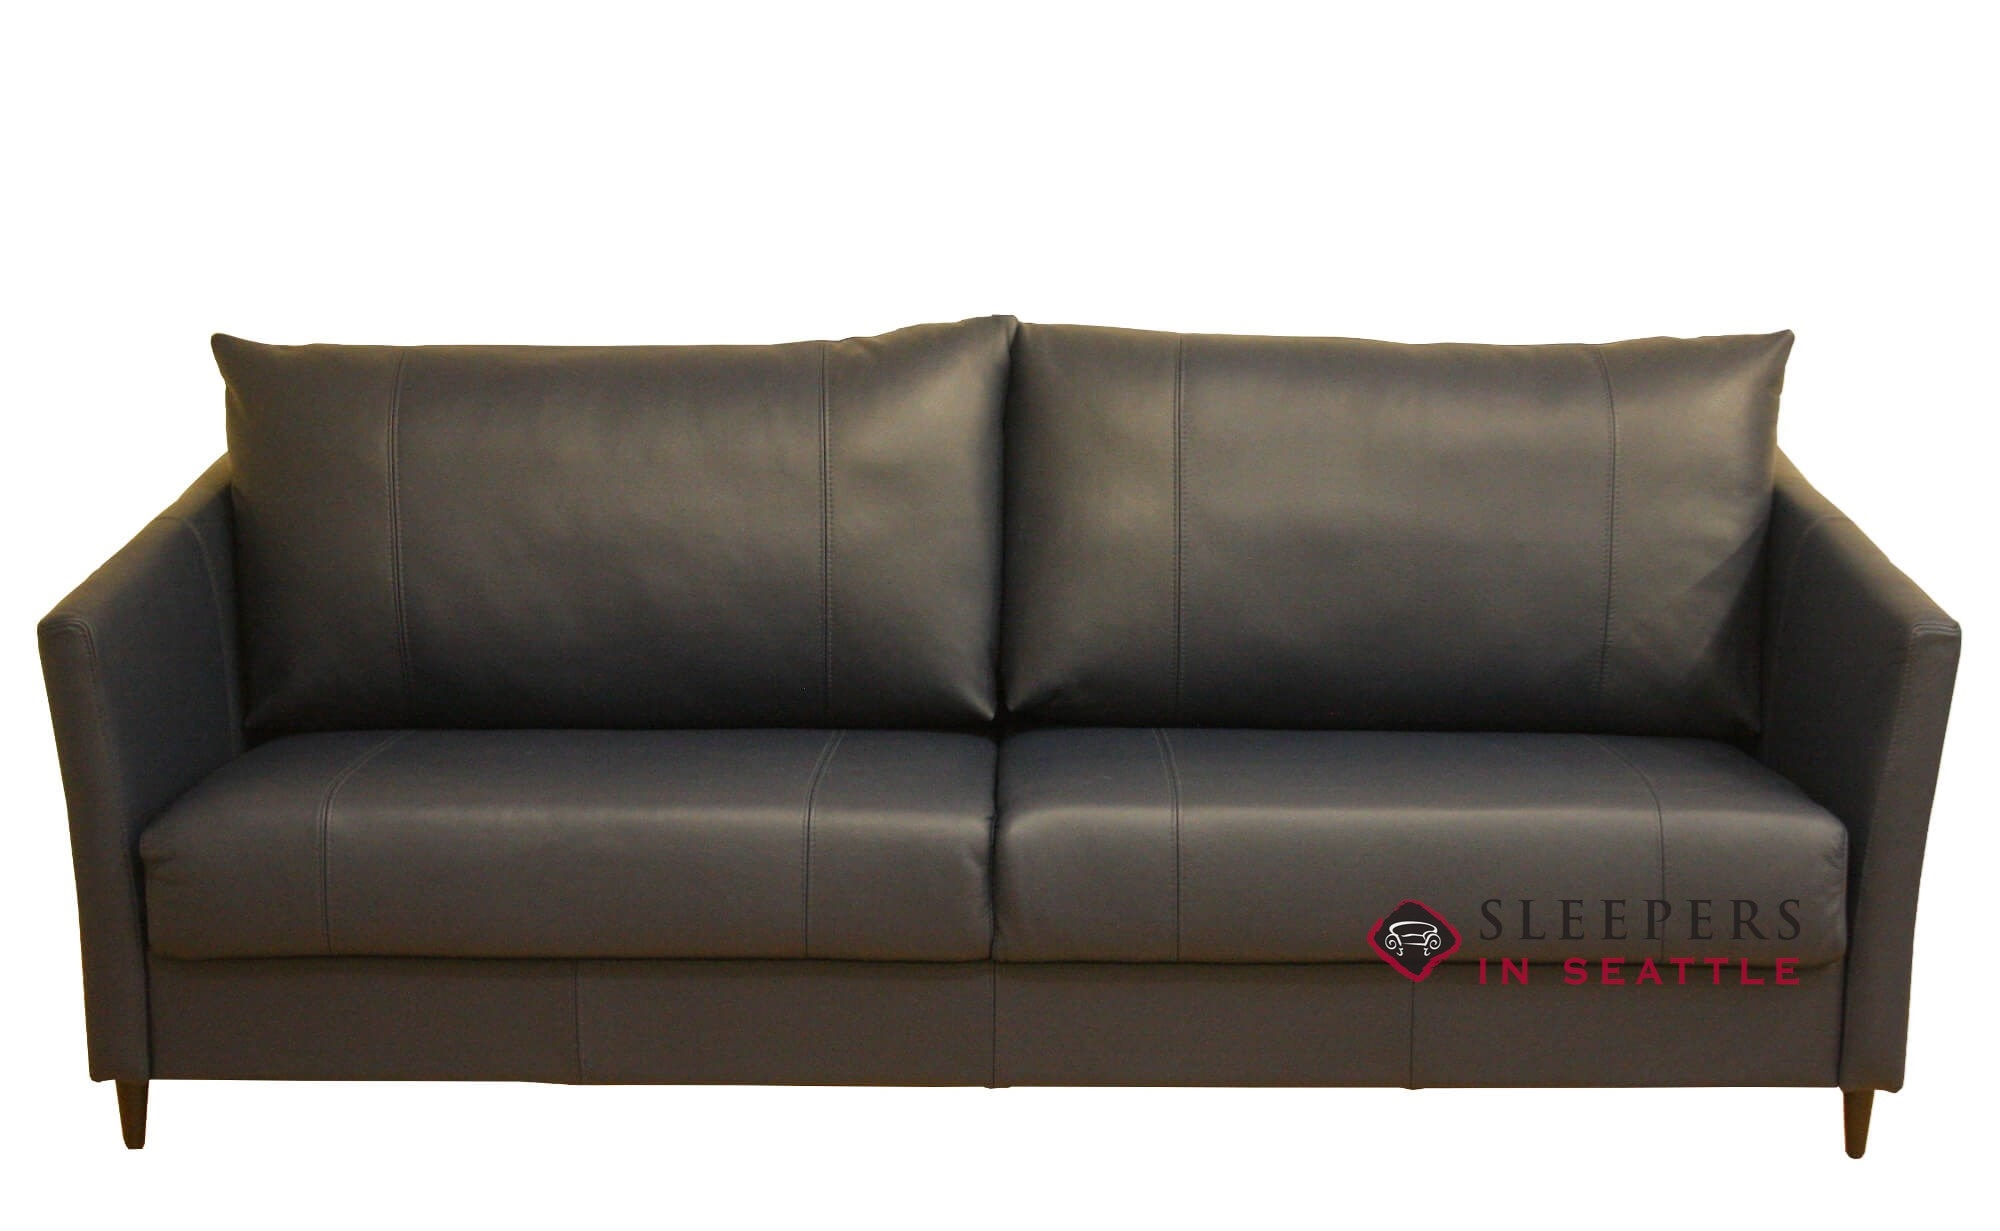 Luonto Erika King Leather Sleeper Sofa